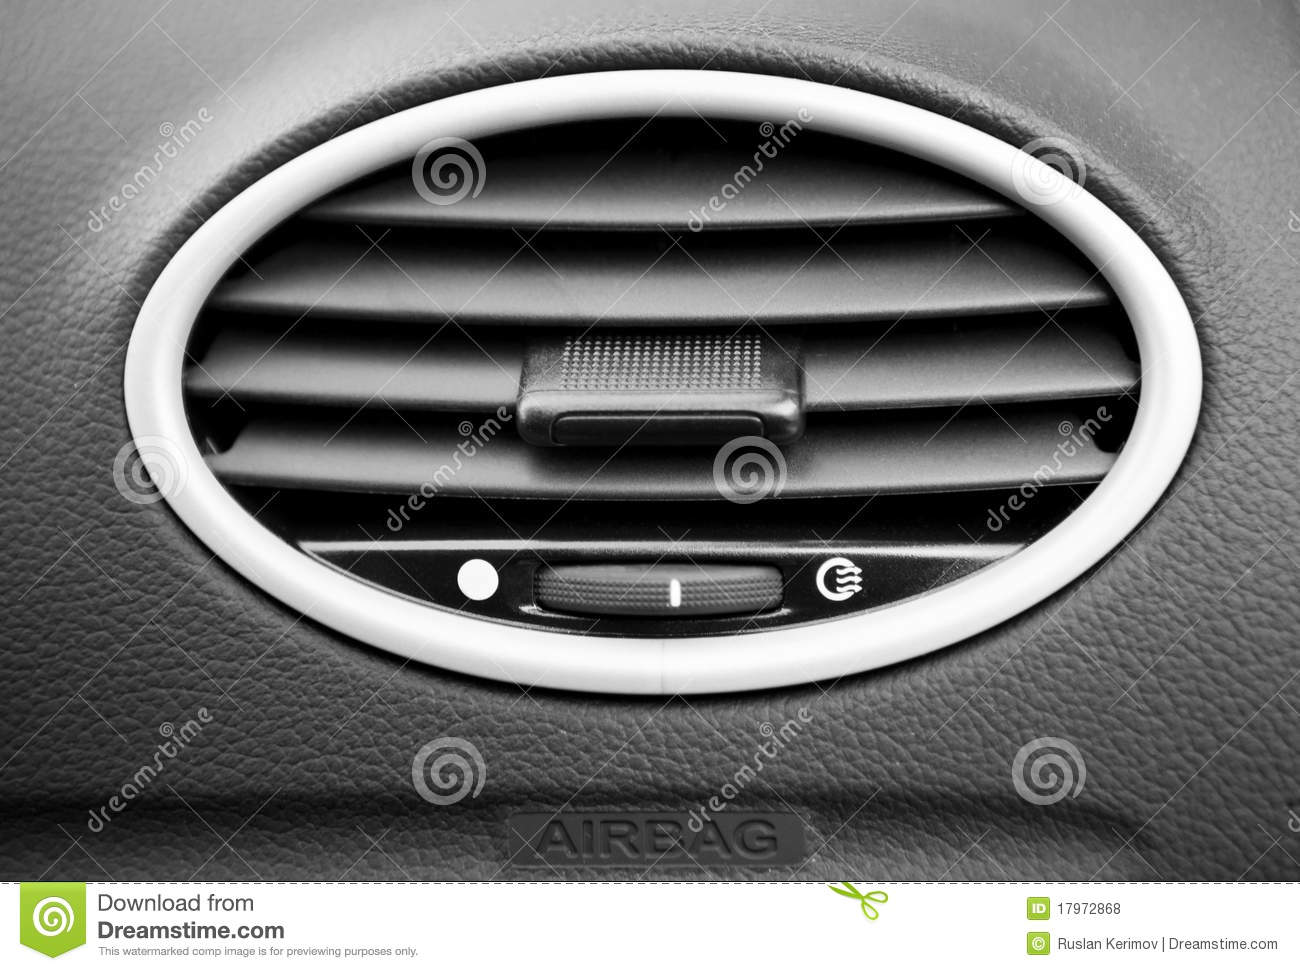 Air Ventilation Royalty Free Stock Photos Image: 17972868 #86A625